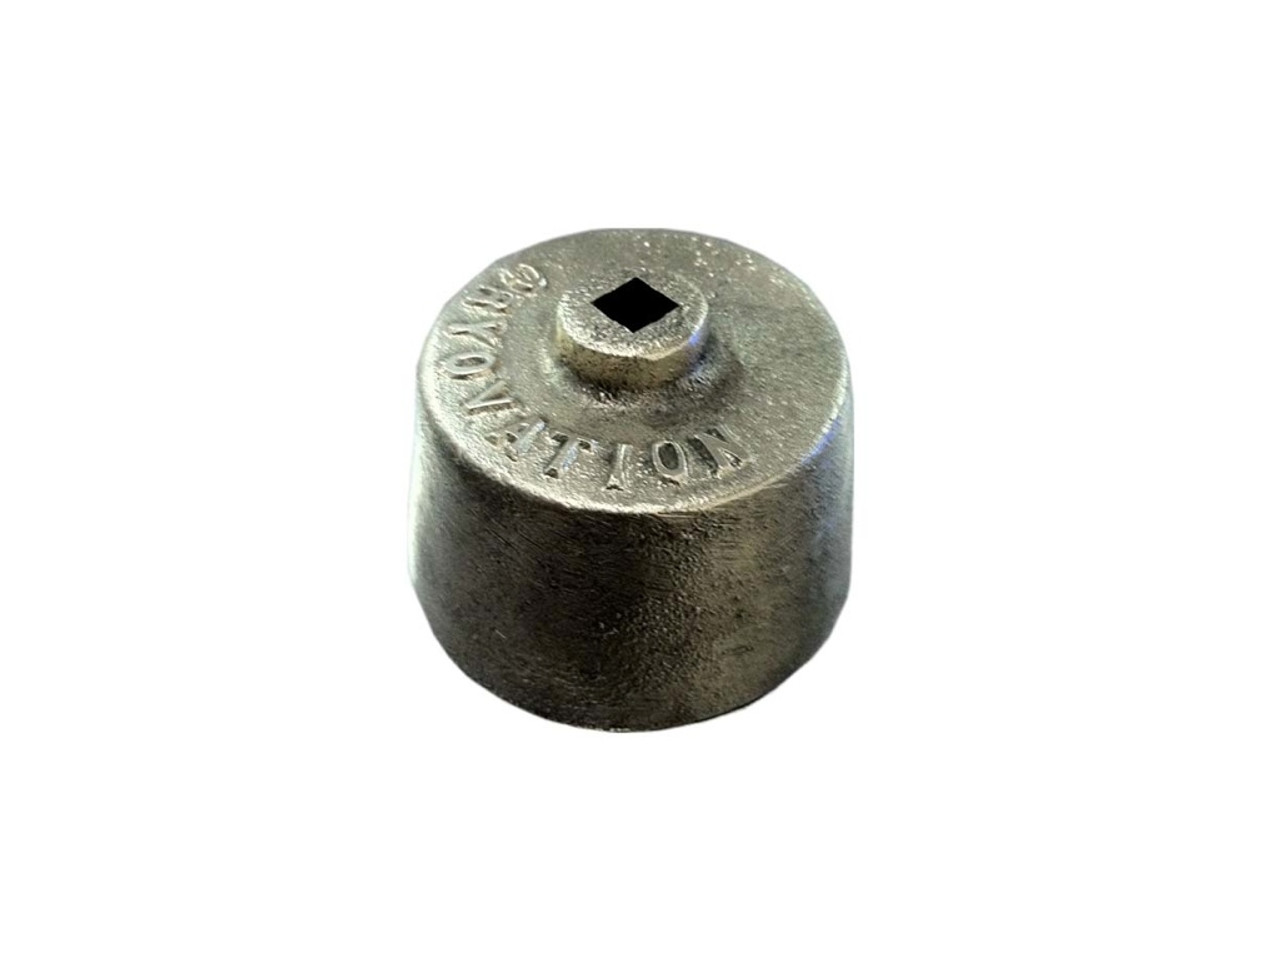 Valve Cup Tool